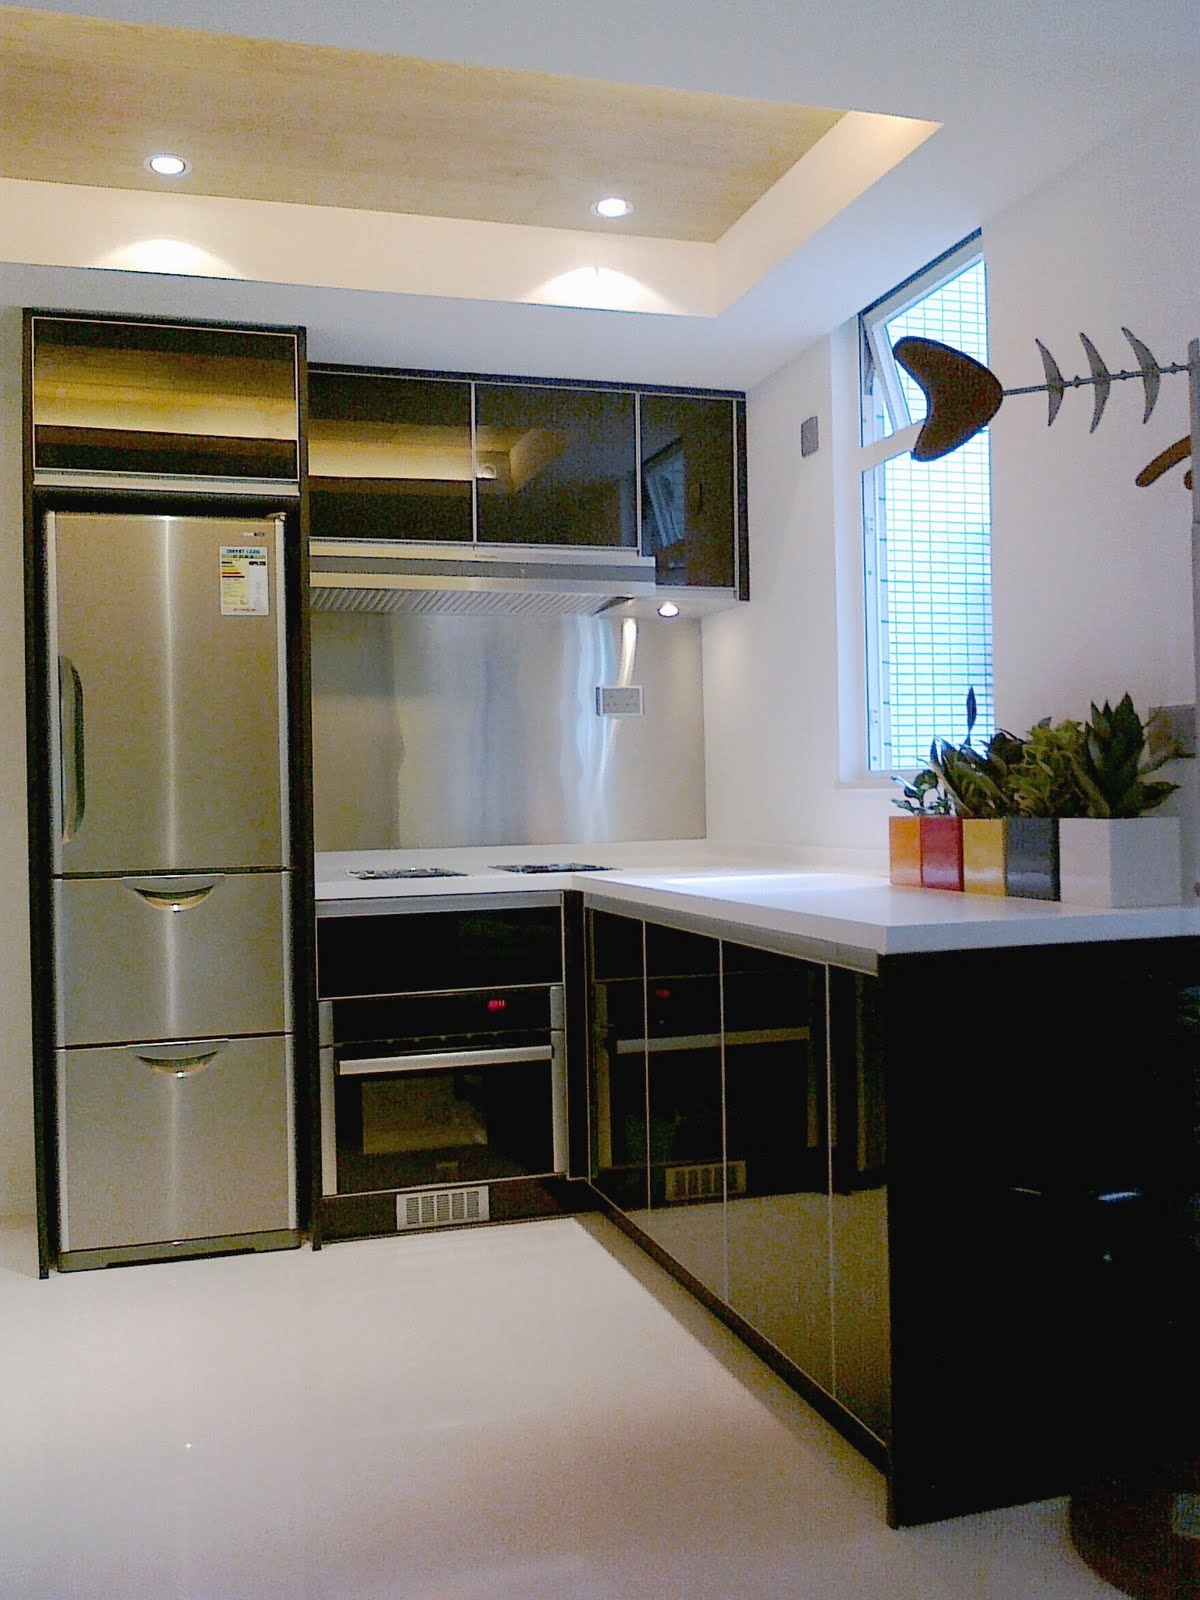 Average cost for kitchen cabinets for Average price kitchen cabinets